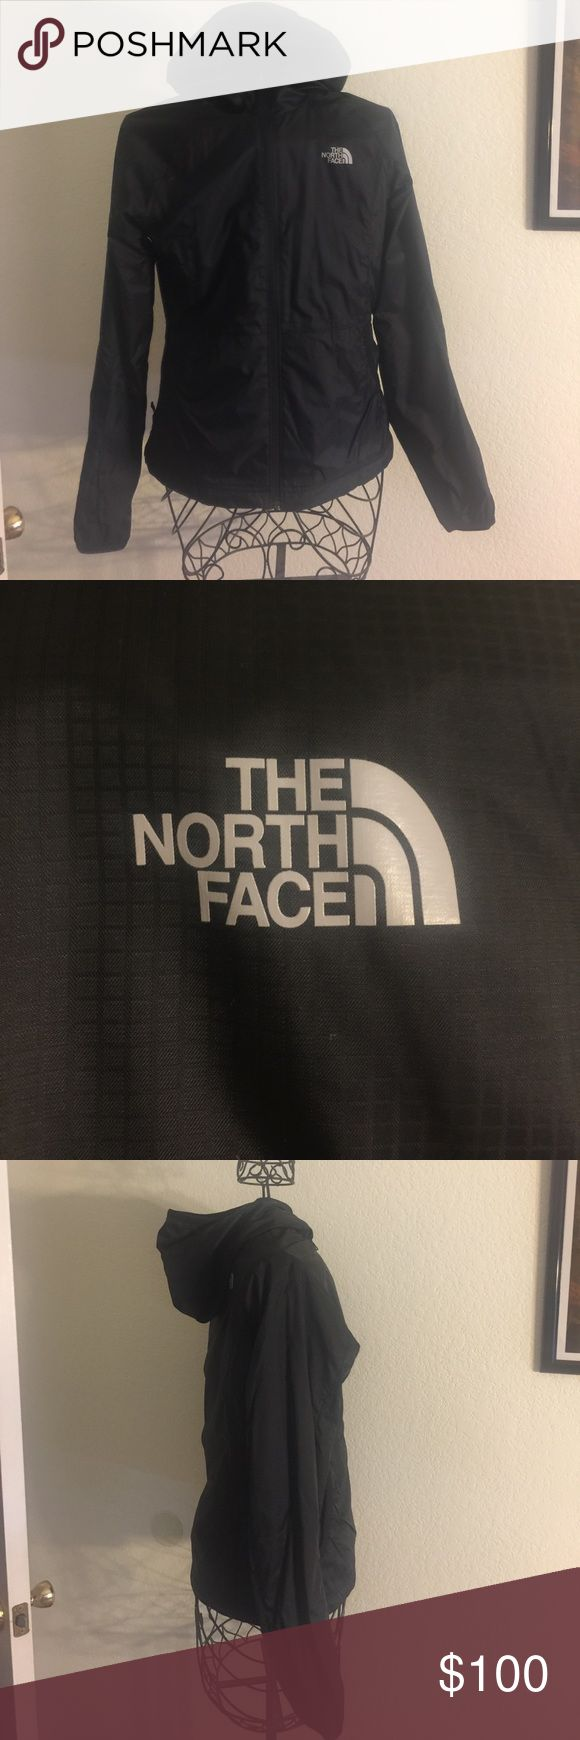 The north face fleece lined raincoat North face fleece lined rain coat.  Size small. Like new The North Face Jackets & Coats